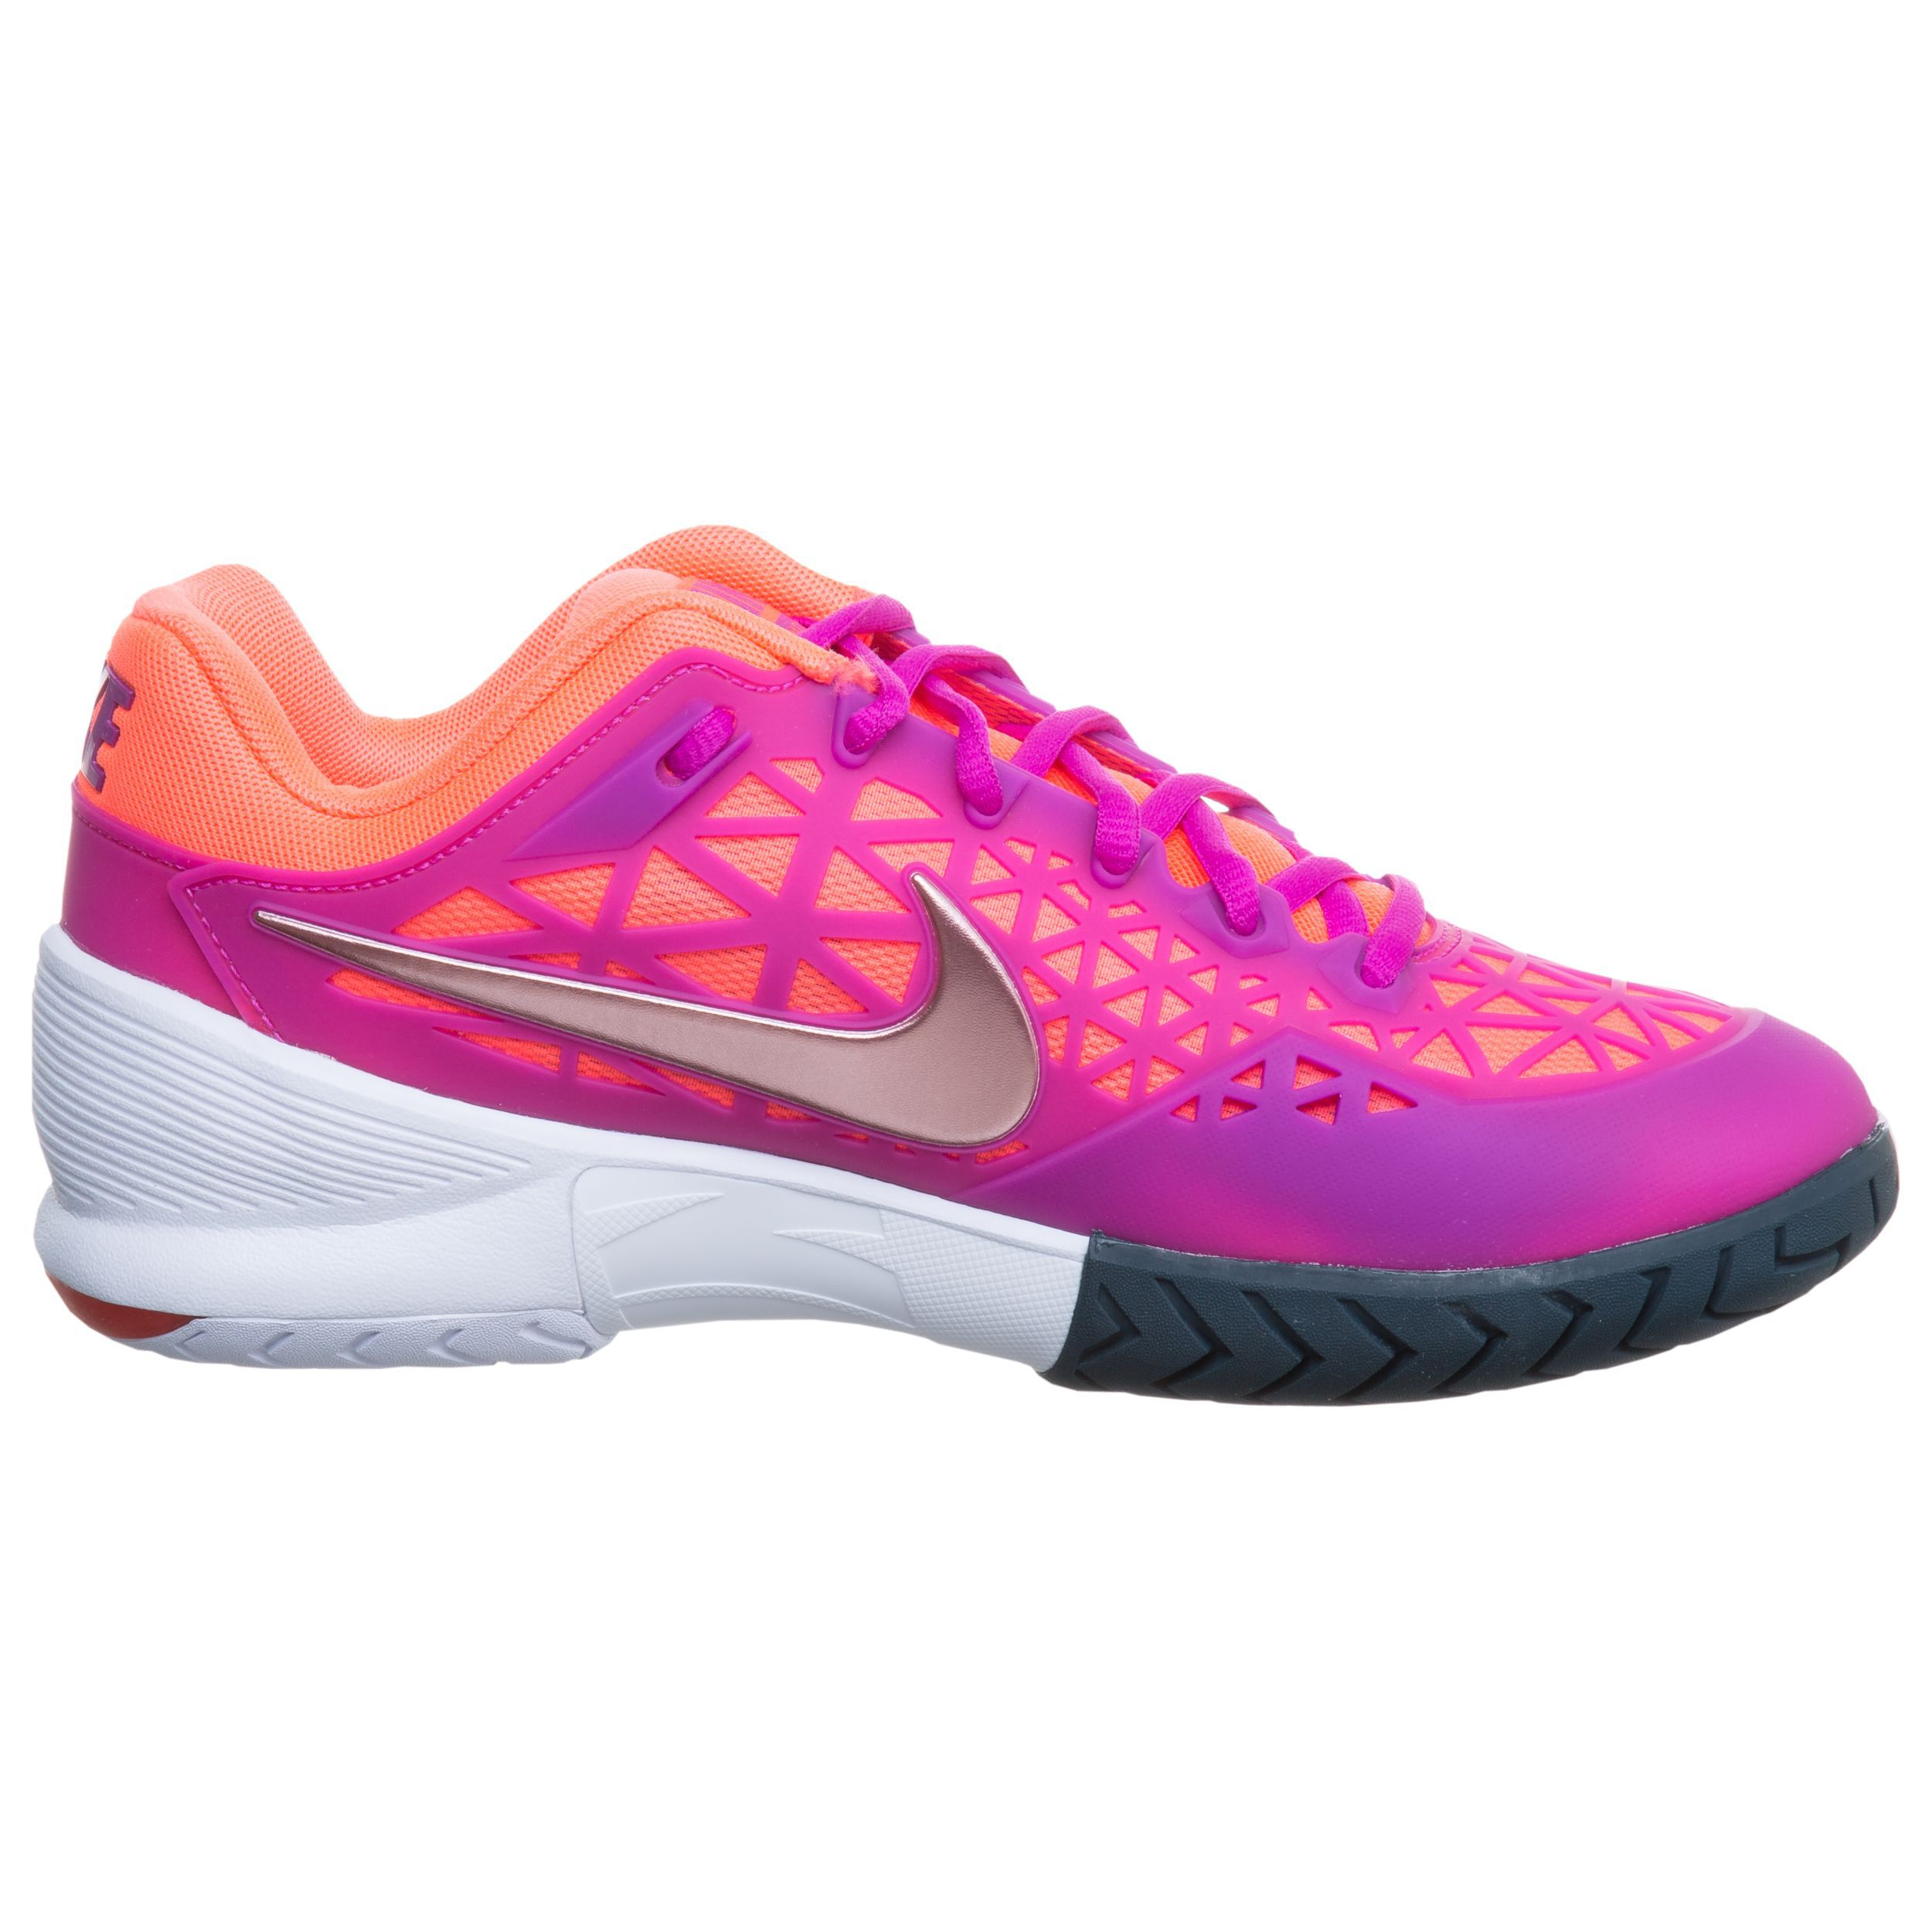 Nike Zoom Cage 2 Chaussures Toutes Surfaces Femmes Pink